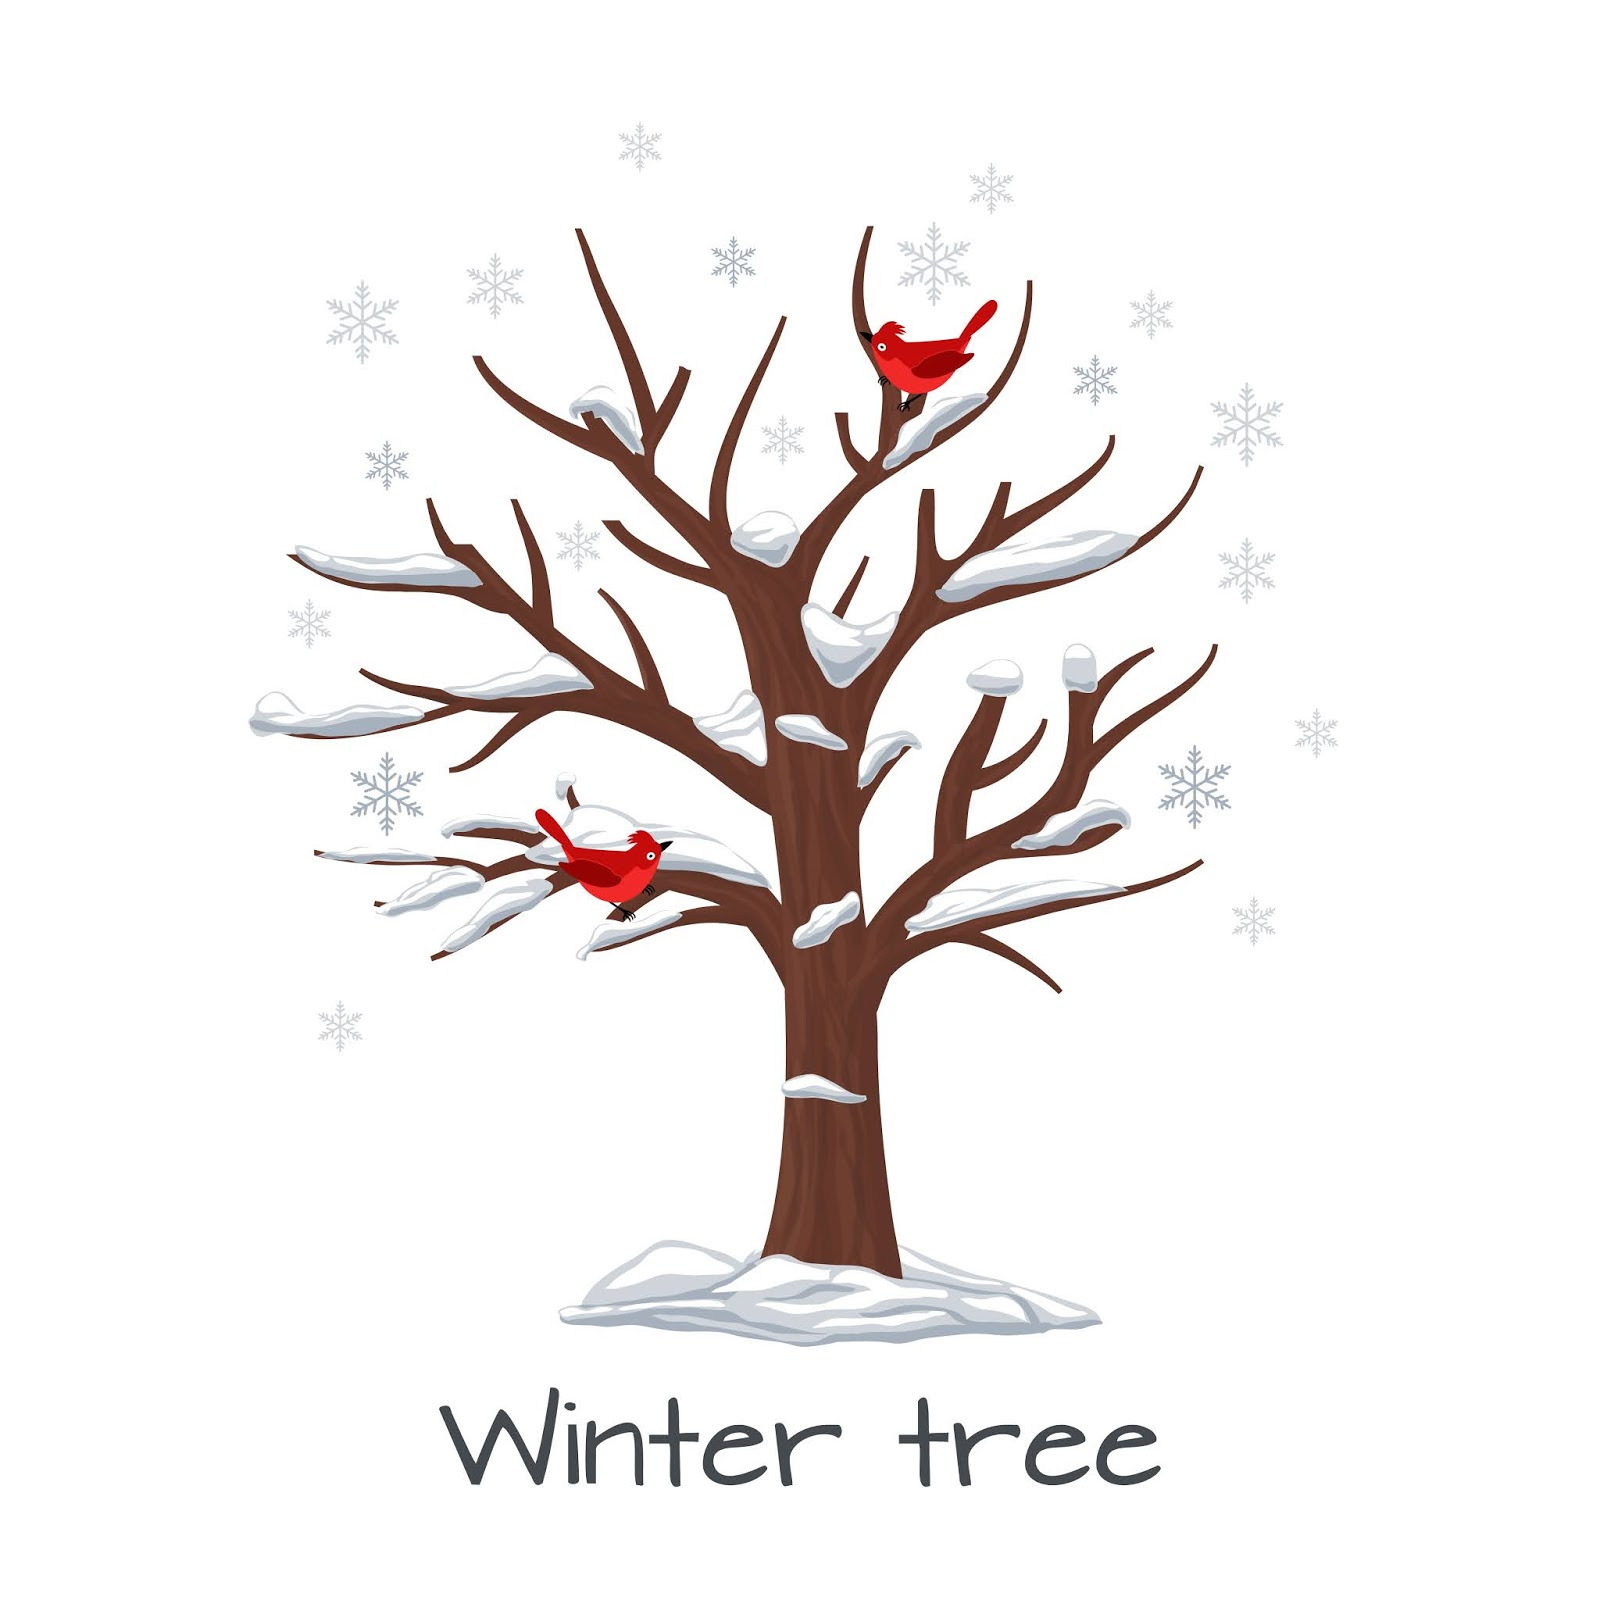 Winter Tree With Birds Season Nature Free Download Vector CDR, AI, EPS and PNG Formats